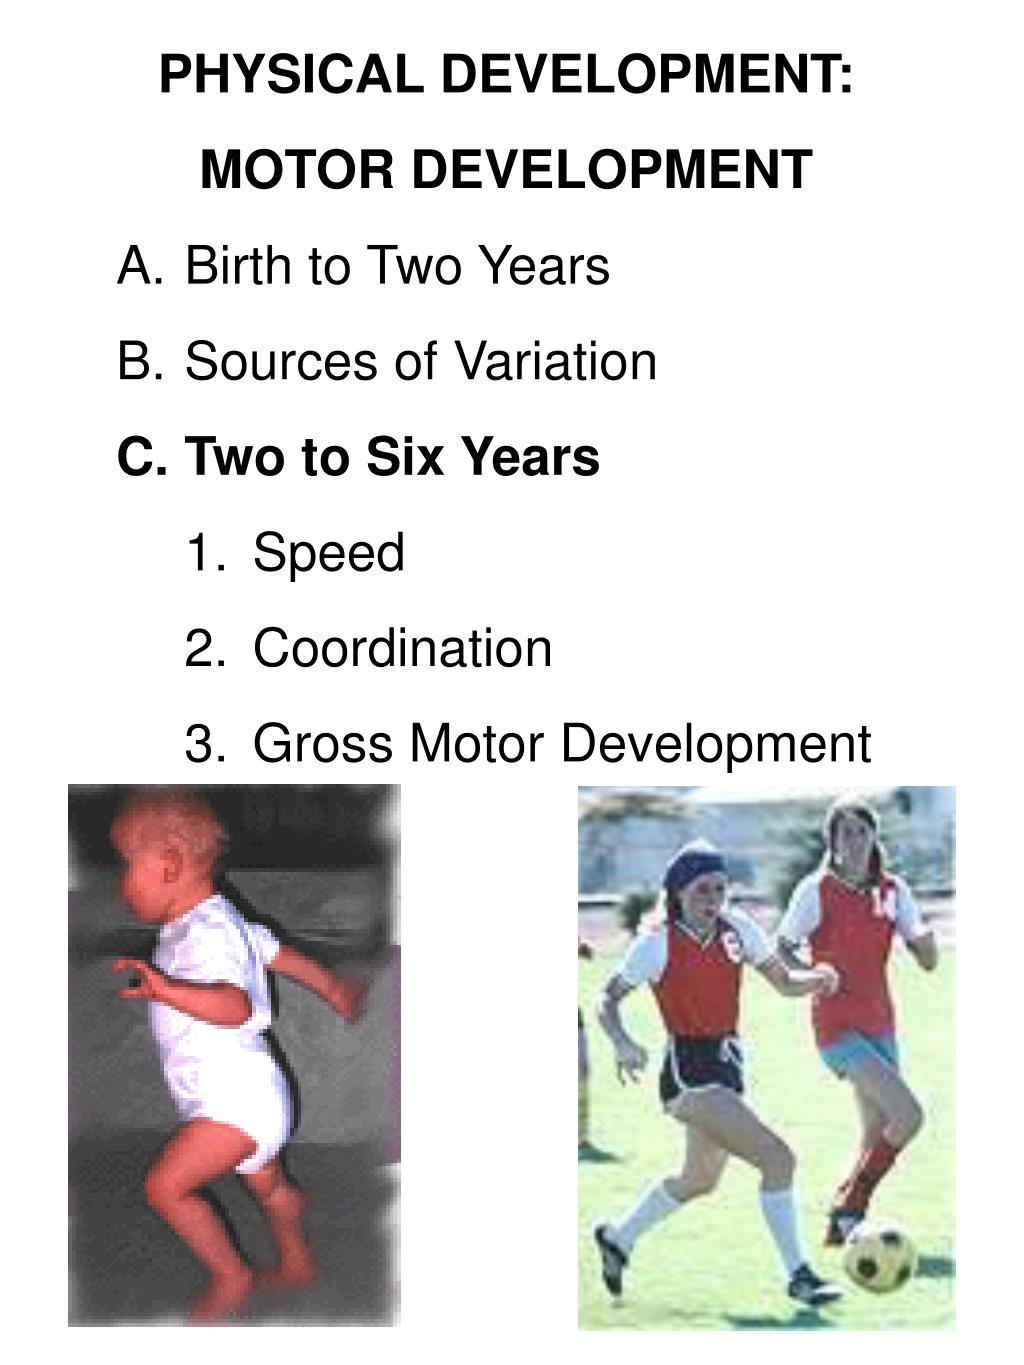 PHYSICAL DEVELOPMENT: